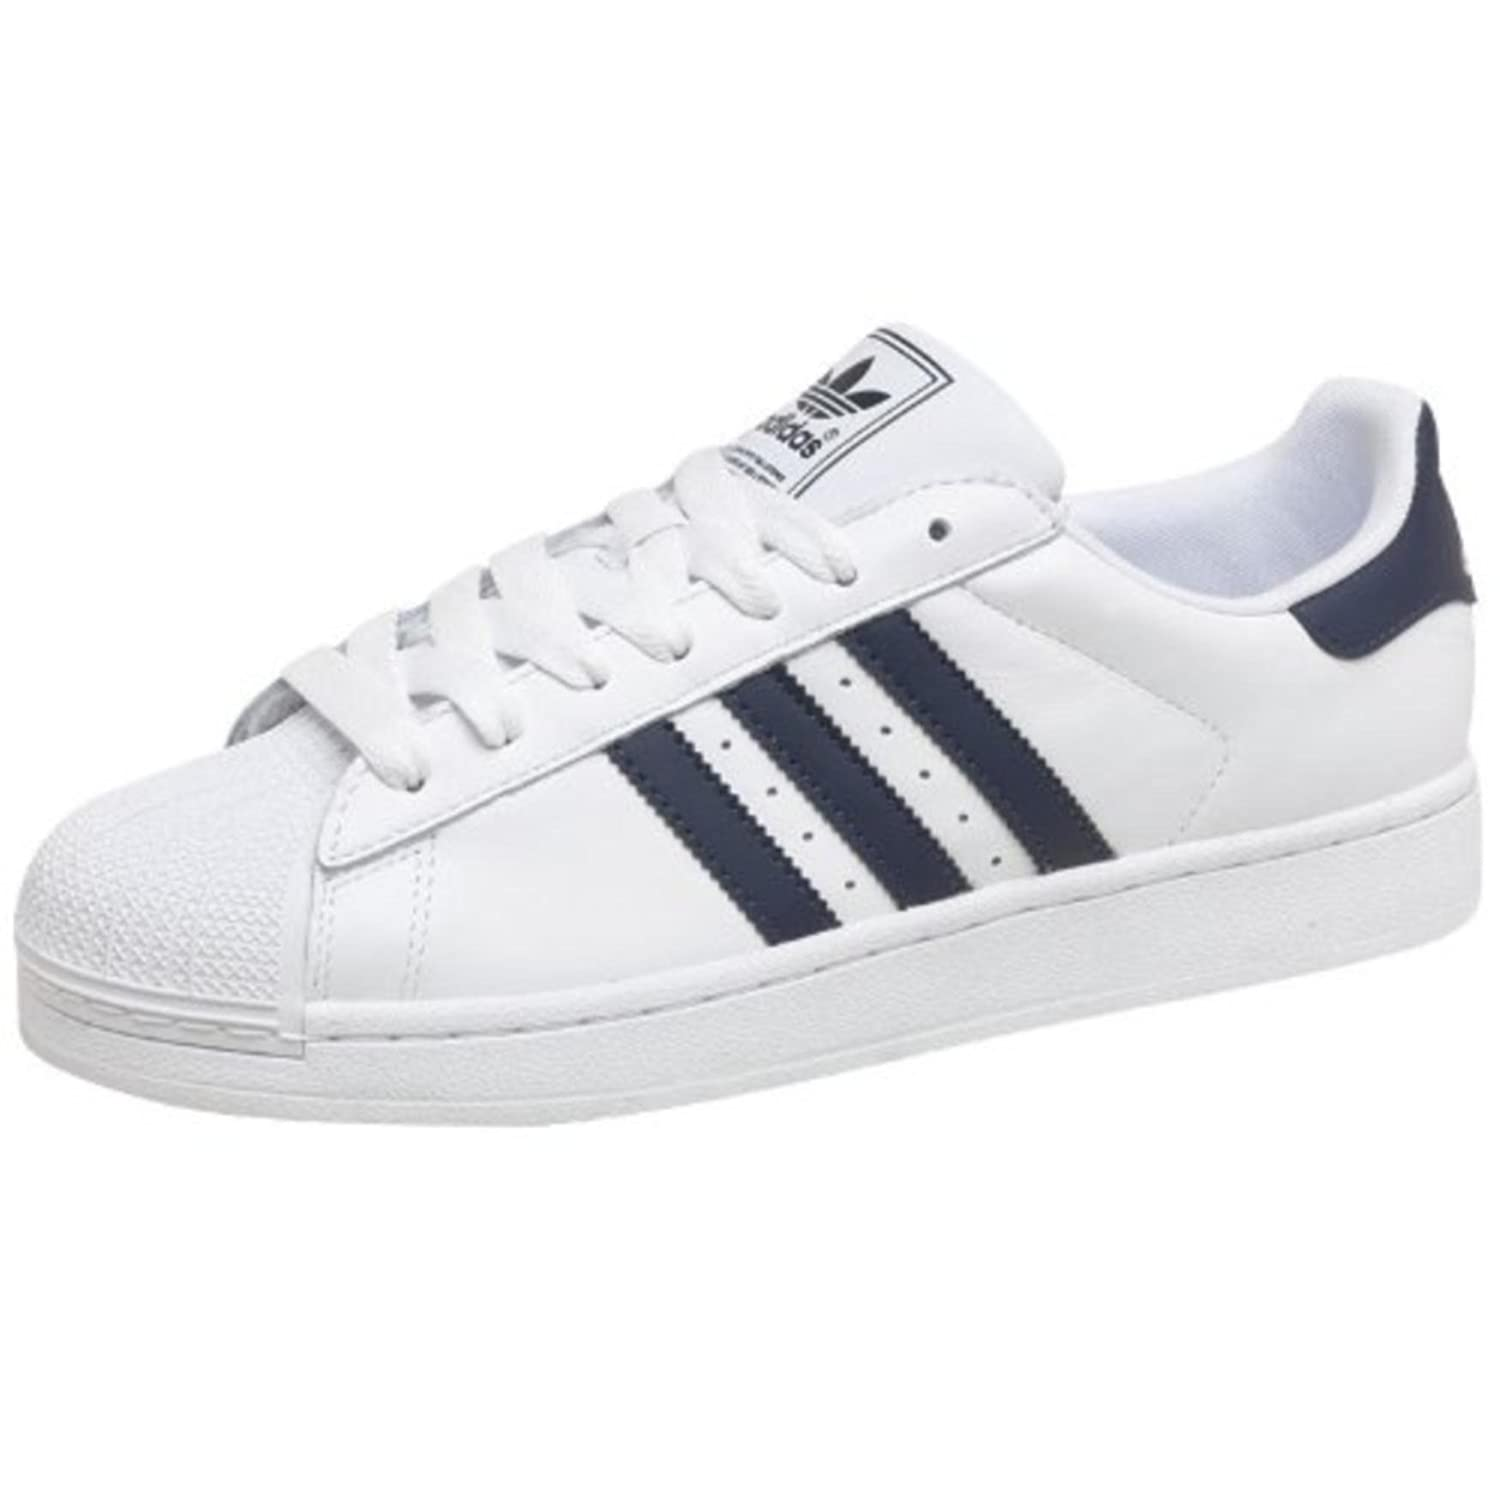 Adidas Originals Herren Superstar 2 Turnschuhe, weiß (Navy Guys Herren